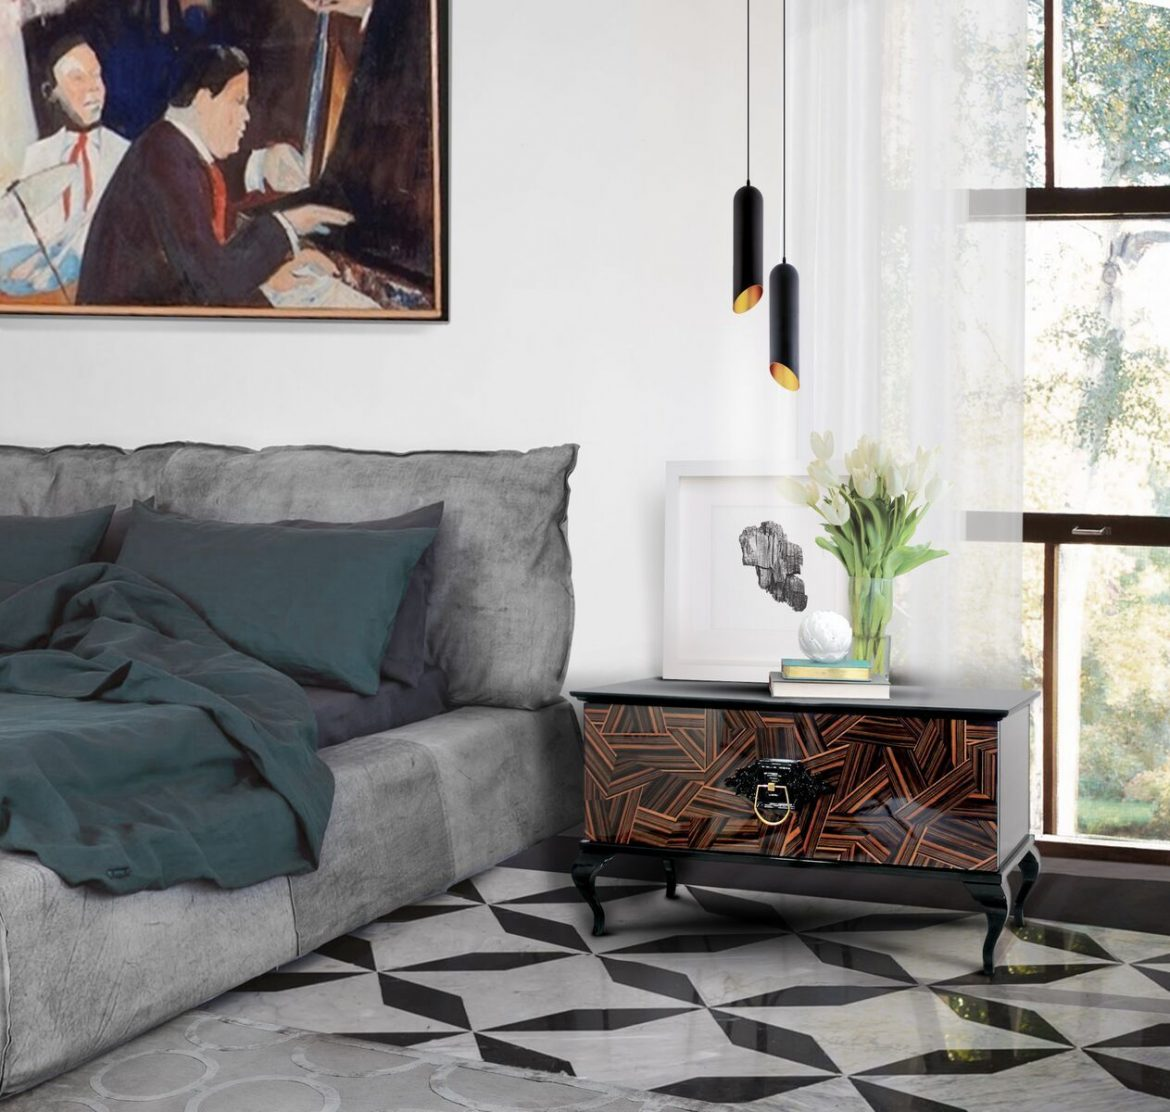 7 Bedside Tables Ideas That Make Your Bedroom Decor More Functional 6